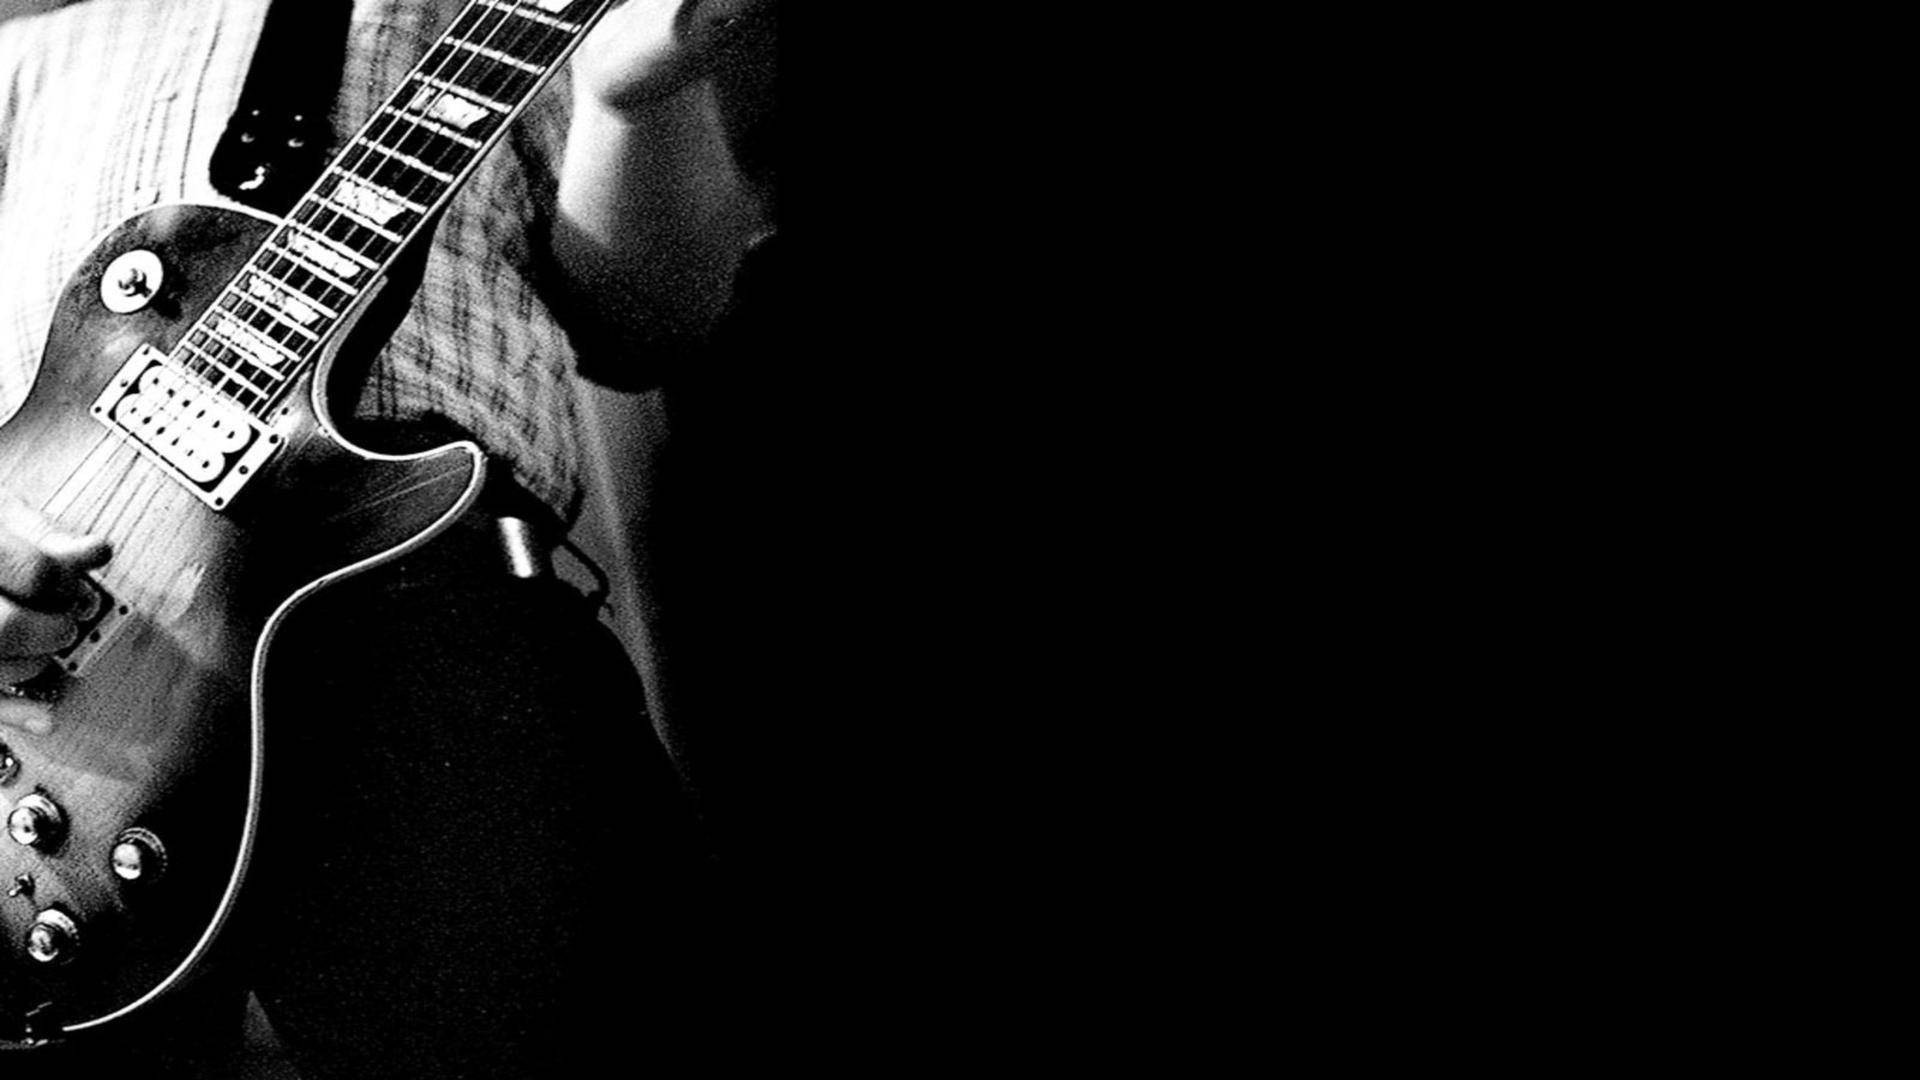 Guitar Girl Silhouete Wallpaper Iphone Rock Wallpaper 183 ① Download Free Awesome Hd Backgrounds For